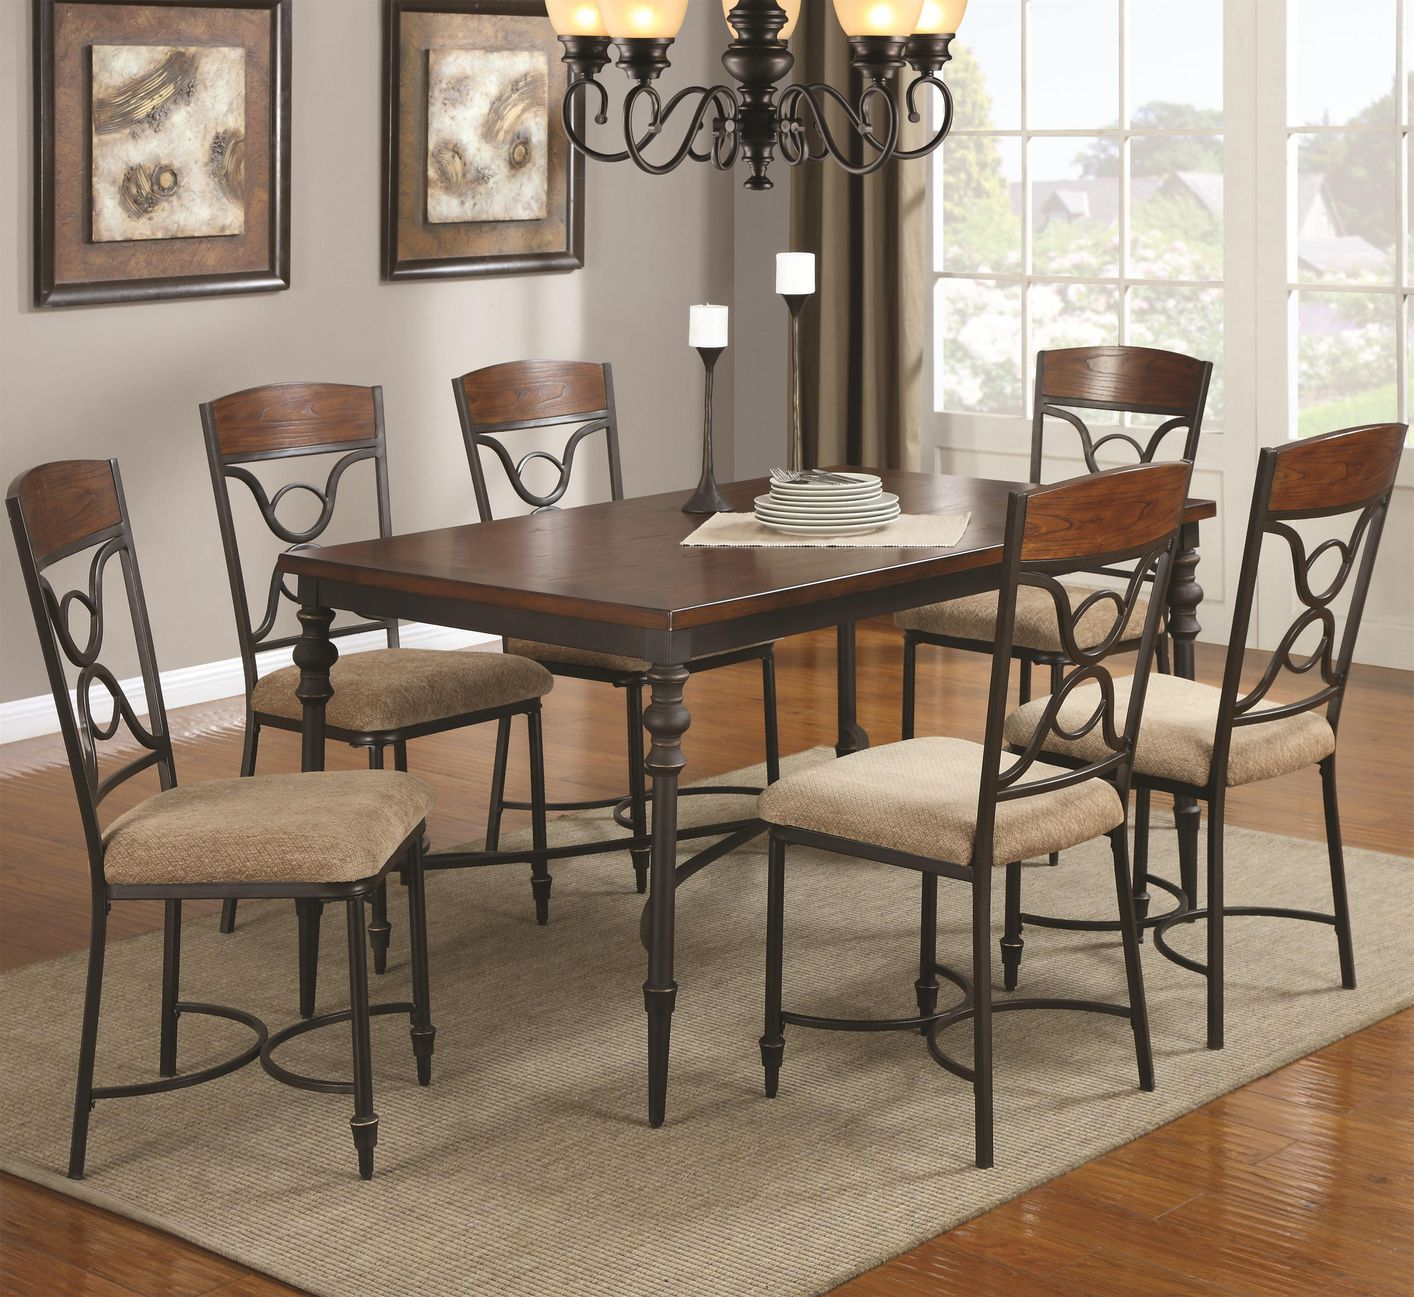 coaster klaus wood kitchen table sets Klaus Cherry Metal And Wood Dining Table Set